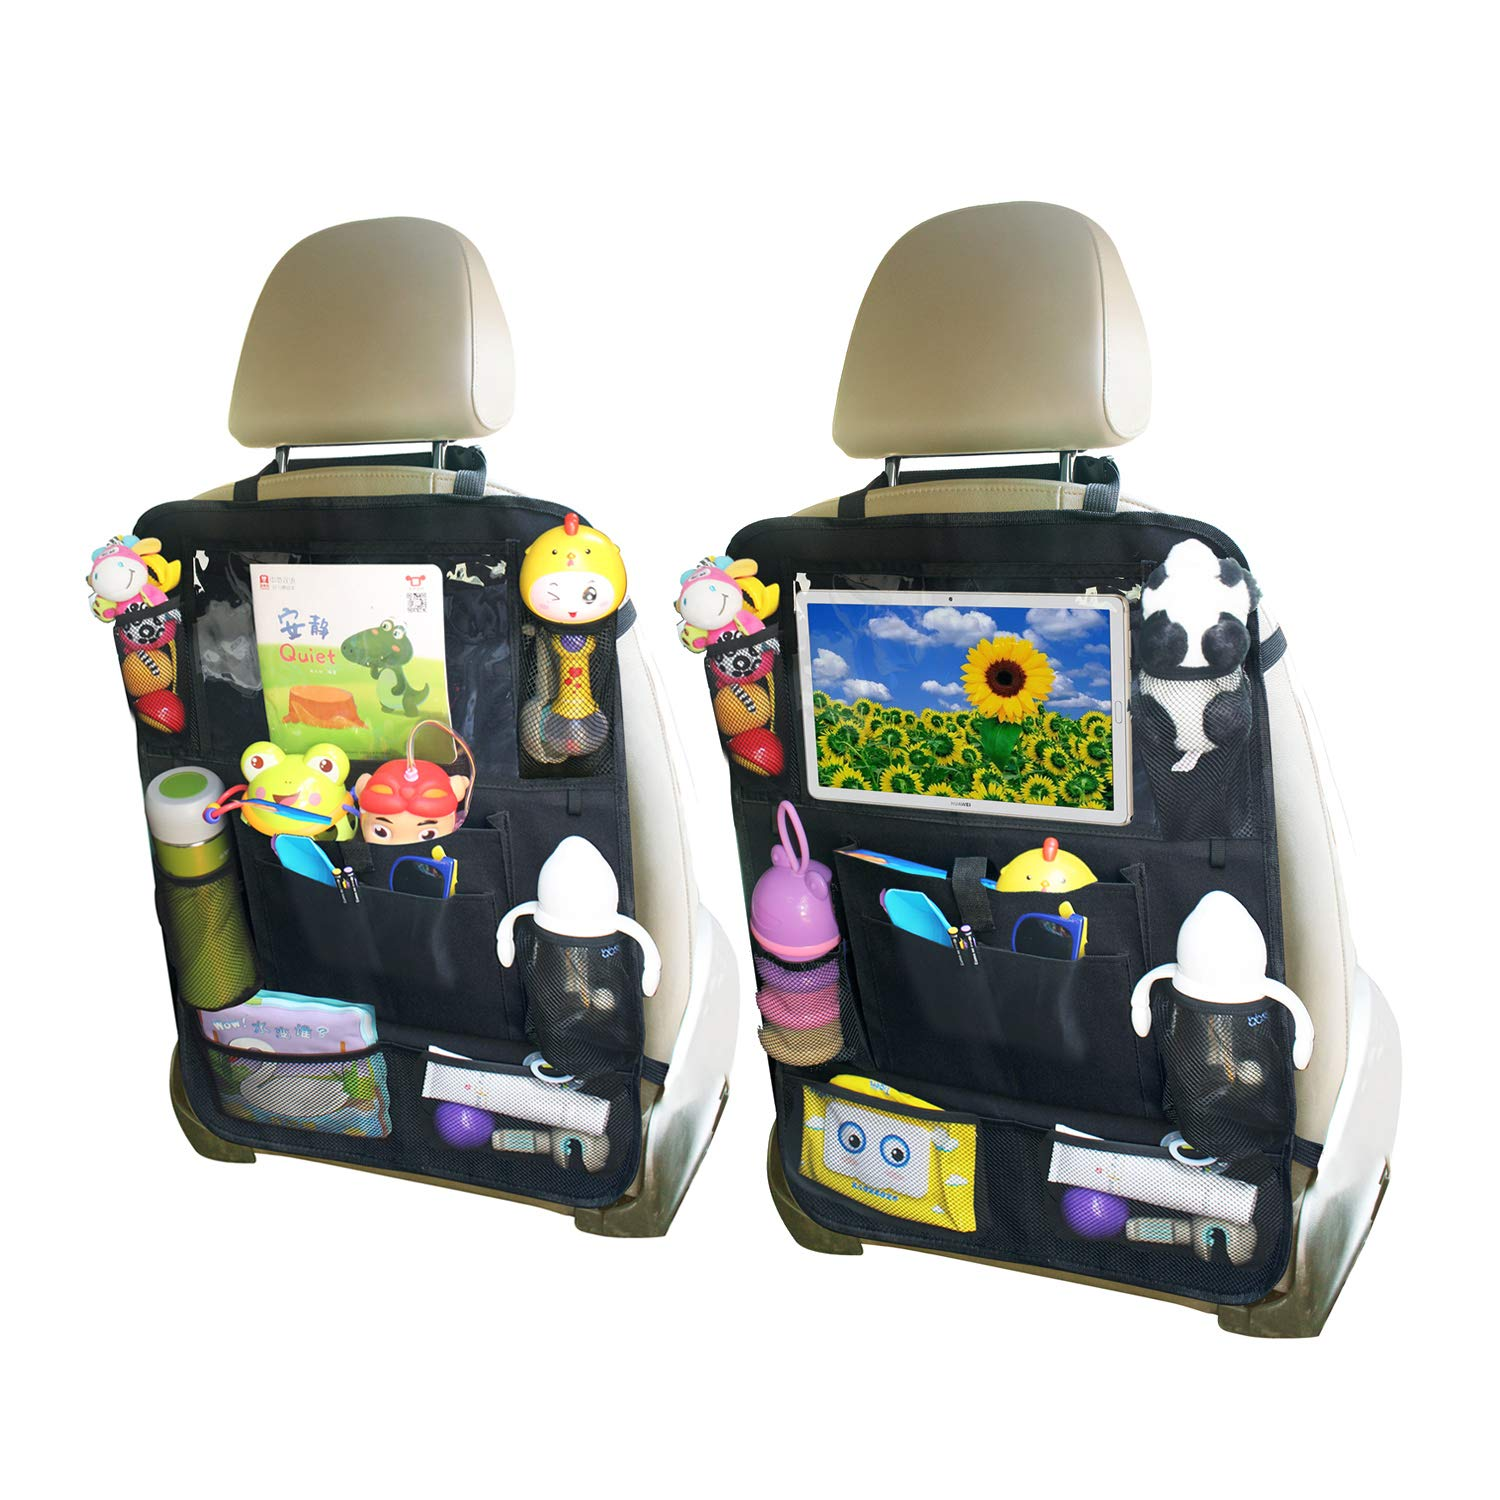 YIJINSHENG Car Backseat Organizer Kick Mats with Touch Screen 10'' Tablet Holder & 8 Storage Pockets Back Seat Protector for Toys Book Bottle Drink Kids Baby Toddler Travel Accessories (2 Pack) by YIJINSHENG